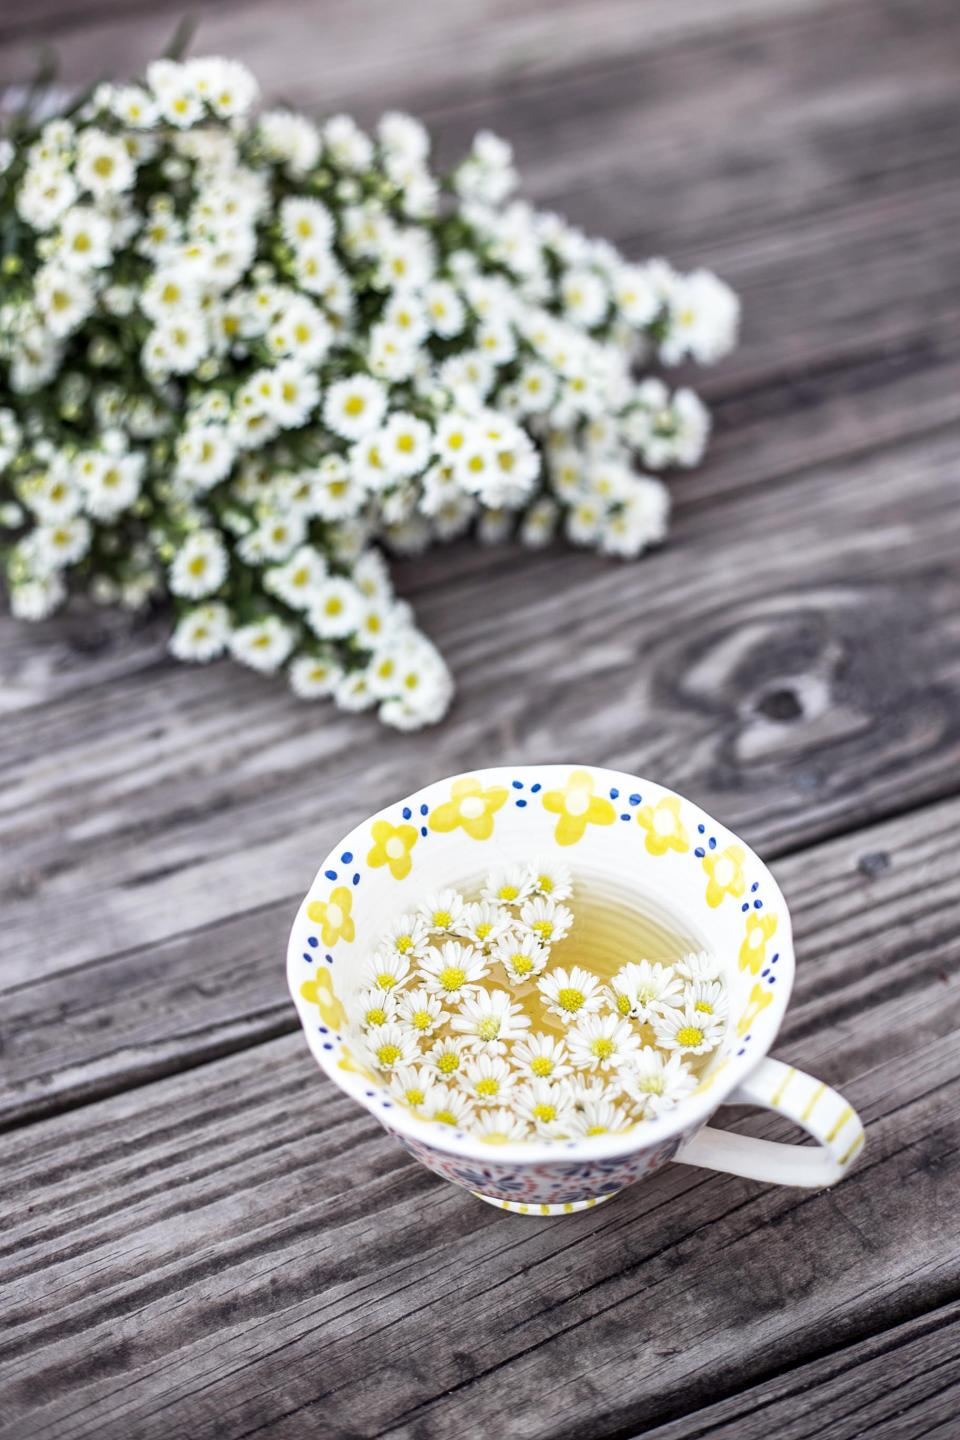 flowers, nature, blossoms, bouquet, white, petals, floating, submerged, water, cup, cute, adorable, wood, panels, table, still, bokeh, styling